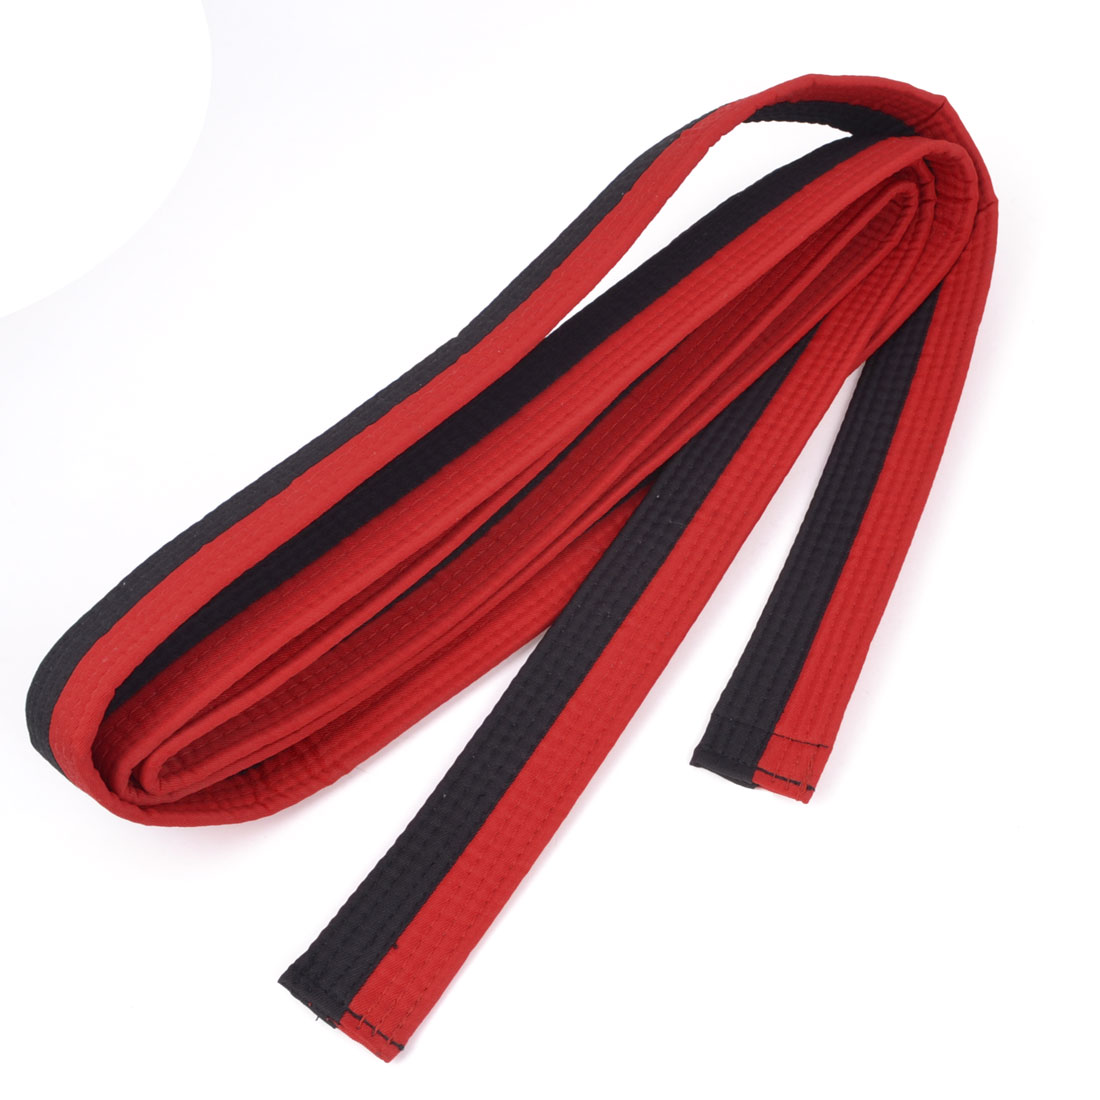 Red Black Level 1 Martial Arts Karate Tae Kwon Do Judo Belts 300cm Length